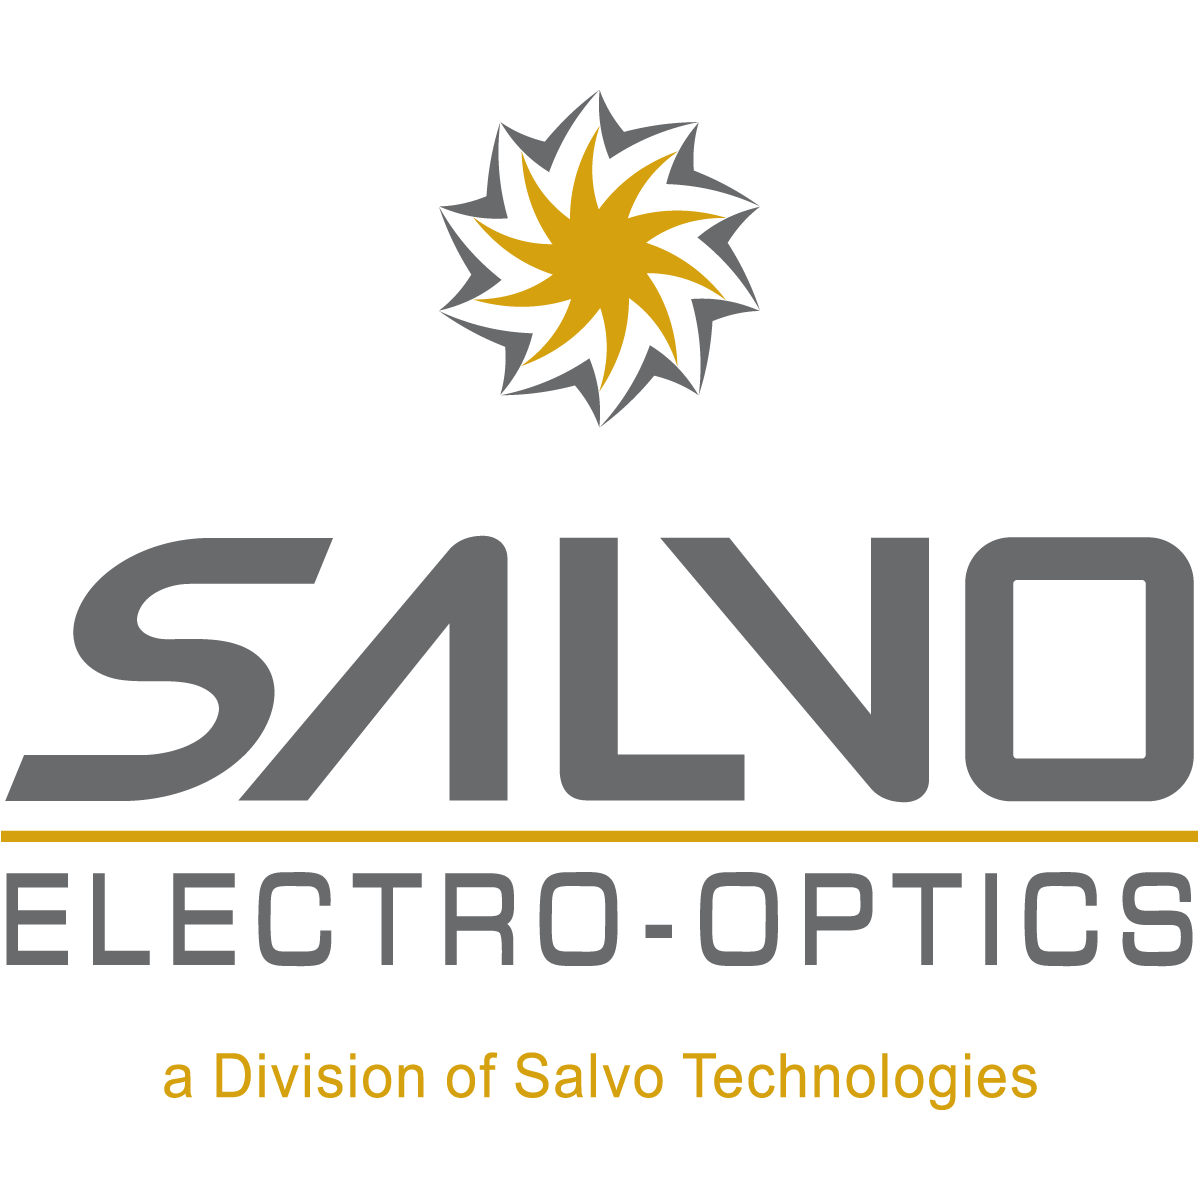 Salvo Electro-Optics